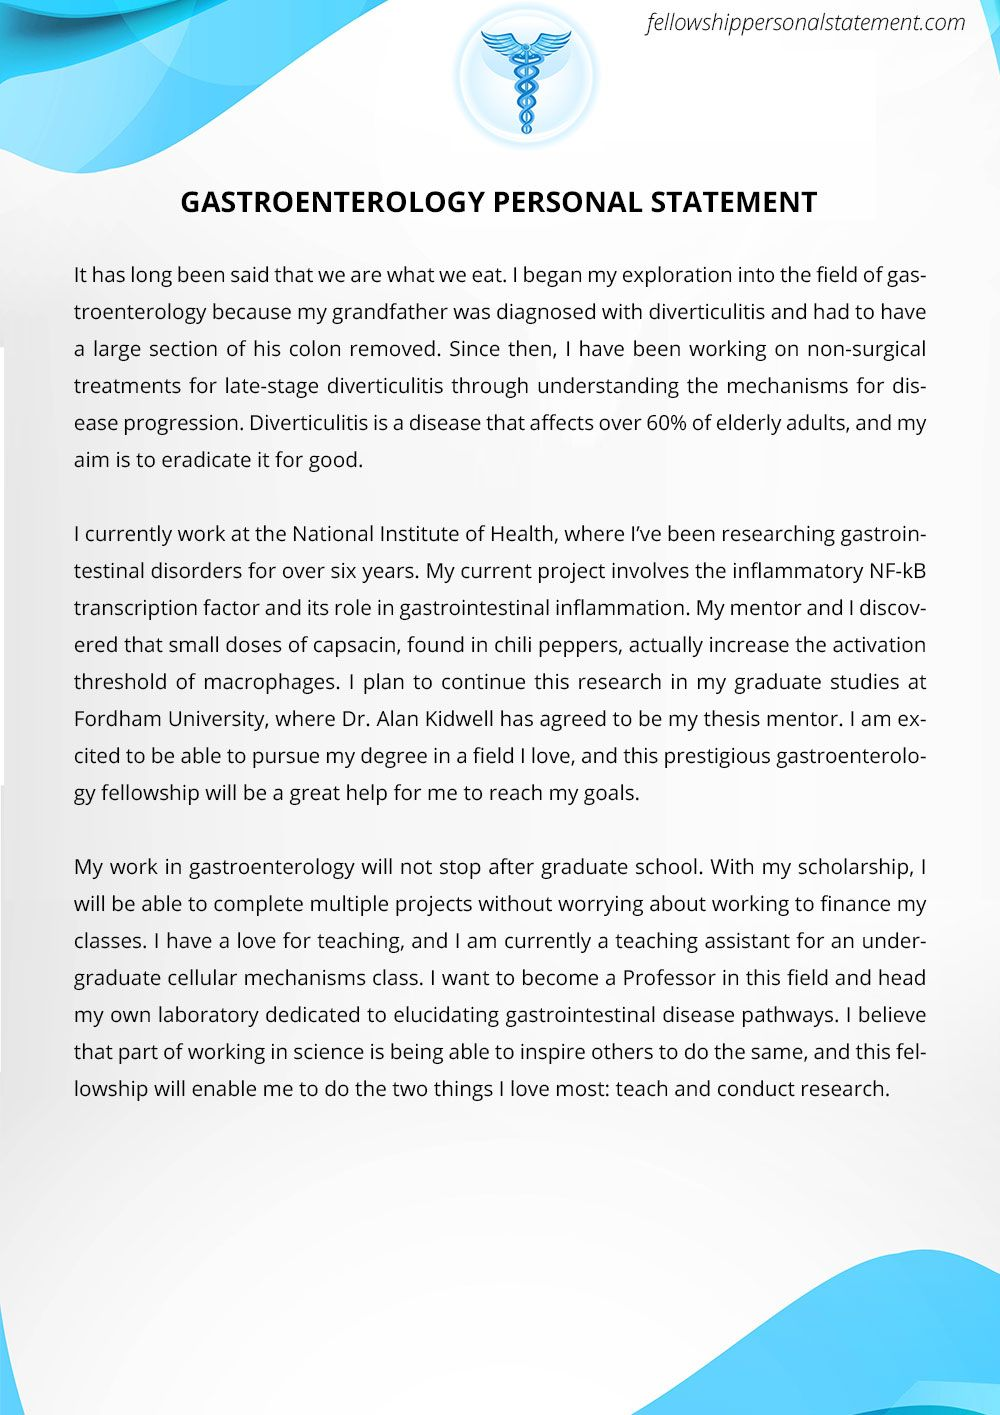 personal statement for fellowship pdf